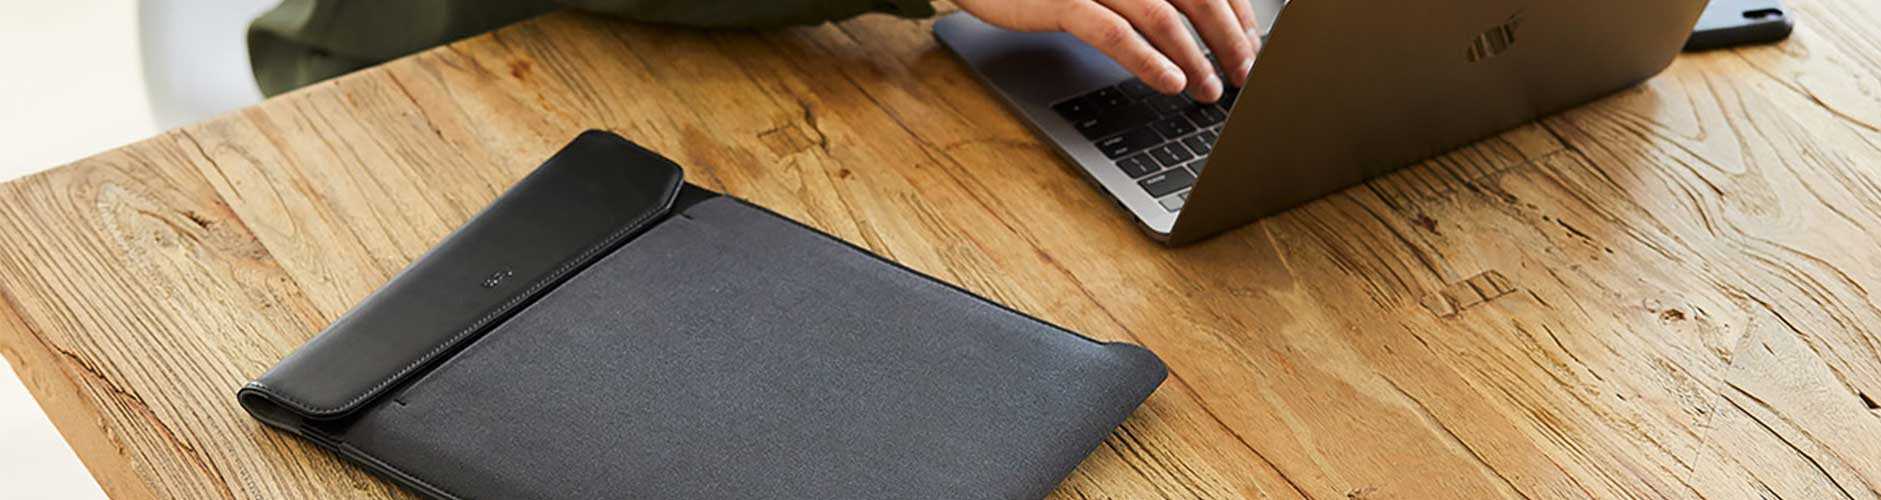 Laptop & Tablet Sleeves | Shop Laptop & Tablet Sleeves Online - Benny's Boardroom